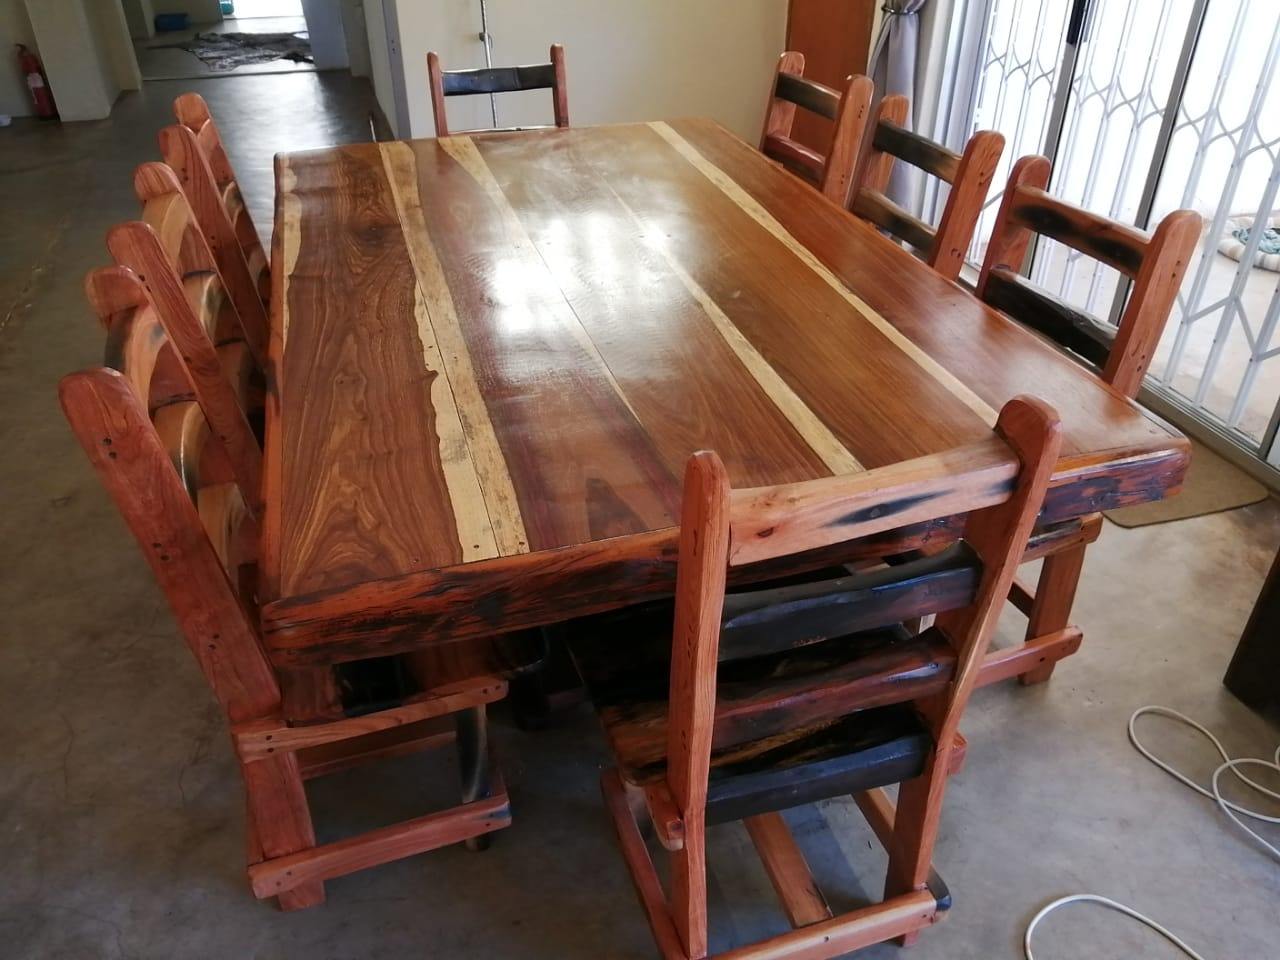 8 seater 2.1×1.2 table